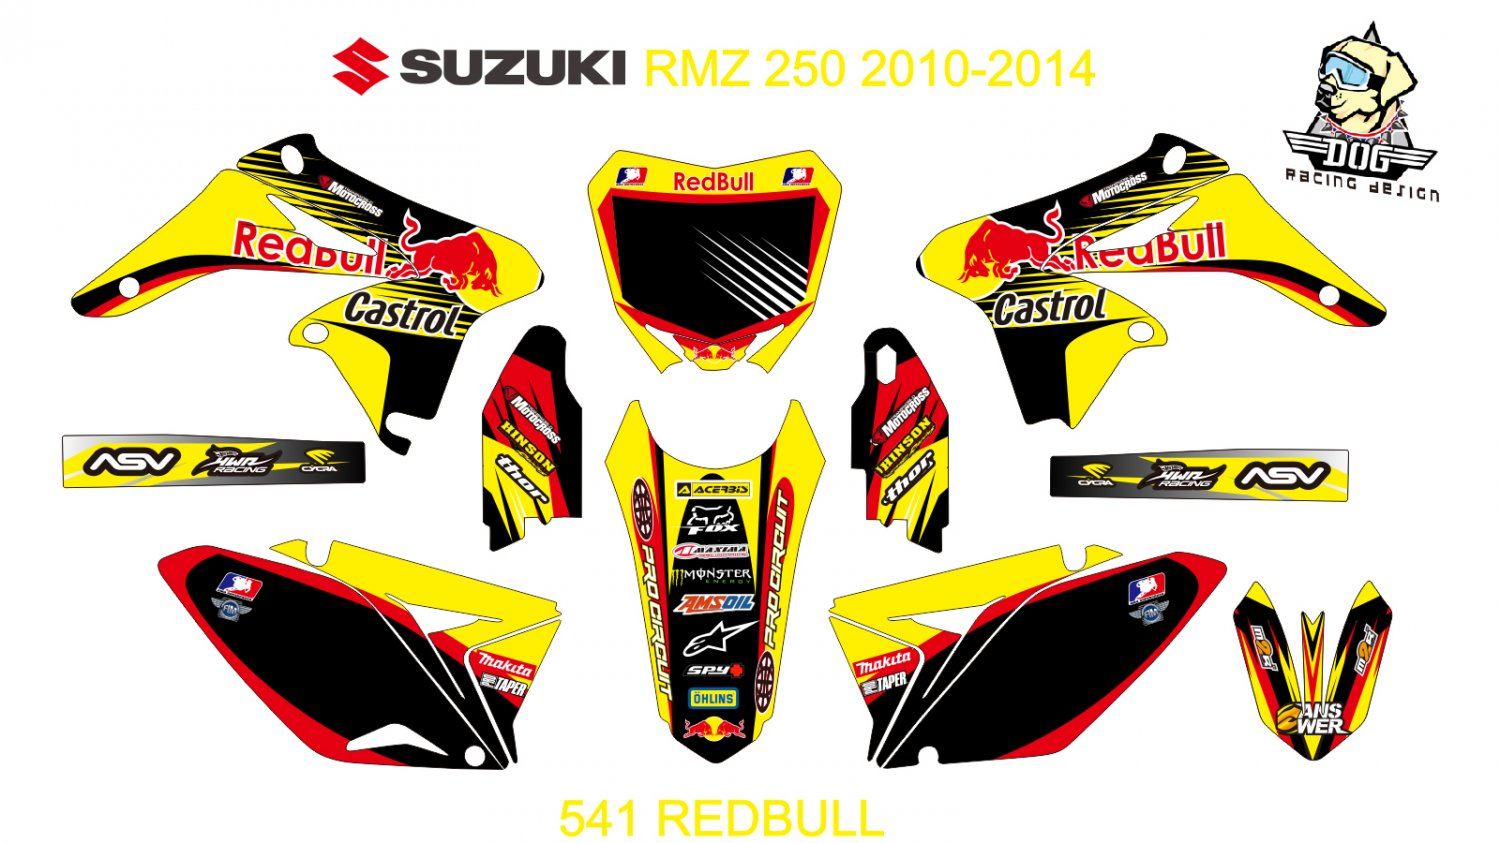 SUZUKI RMZ 250 2010-2014 GRAPHIC DECAL KIT CODE.541